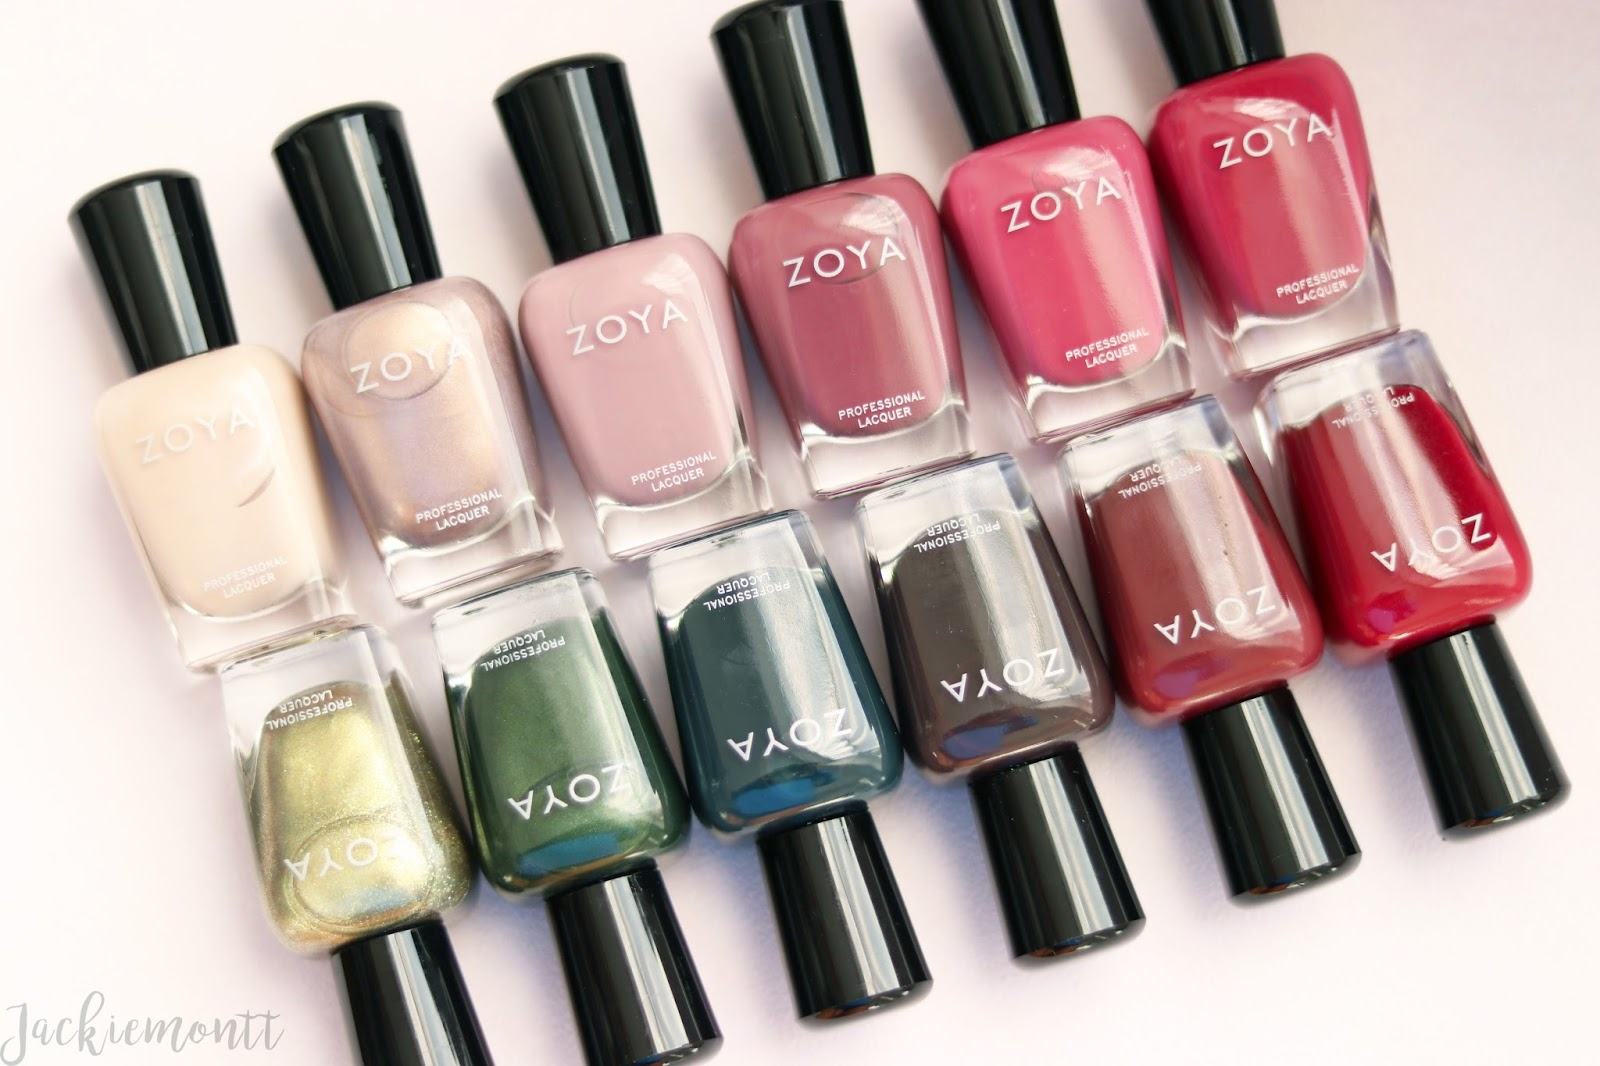 Zoya | Sophisticates Fall 2017 Collection Swatches - JACKIEMONTT